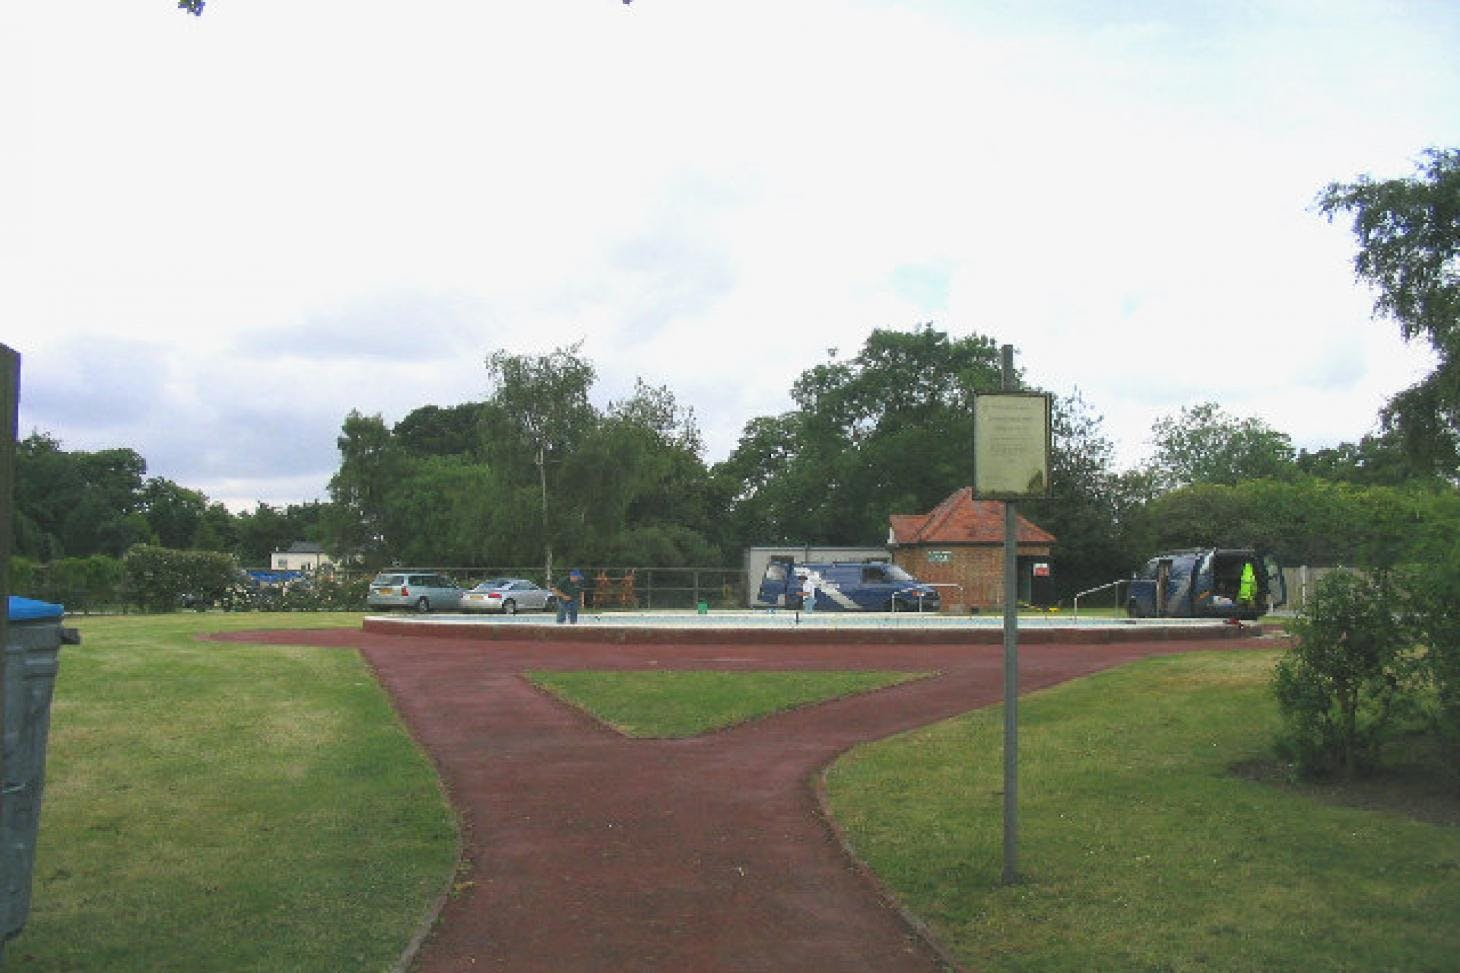 King George's Playing Fields Outdoor | Concrete netball court